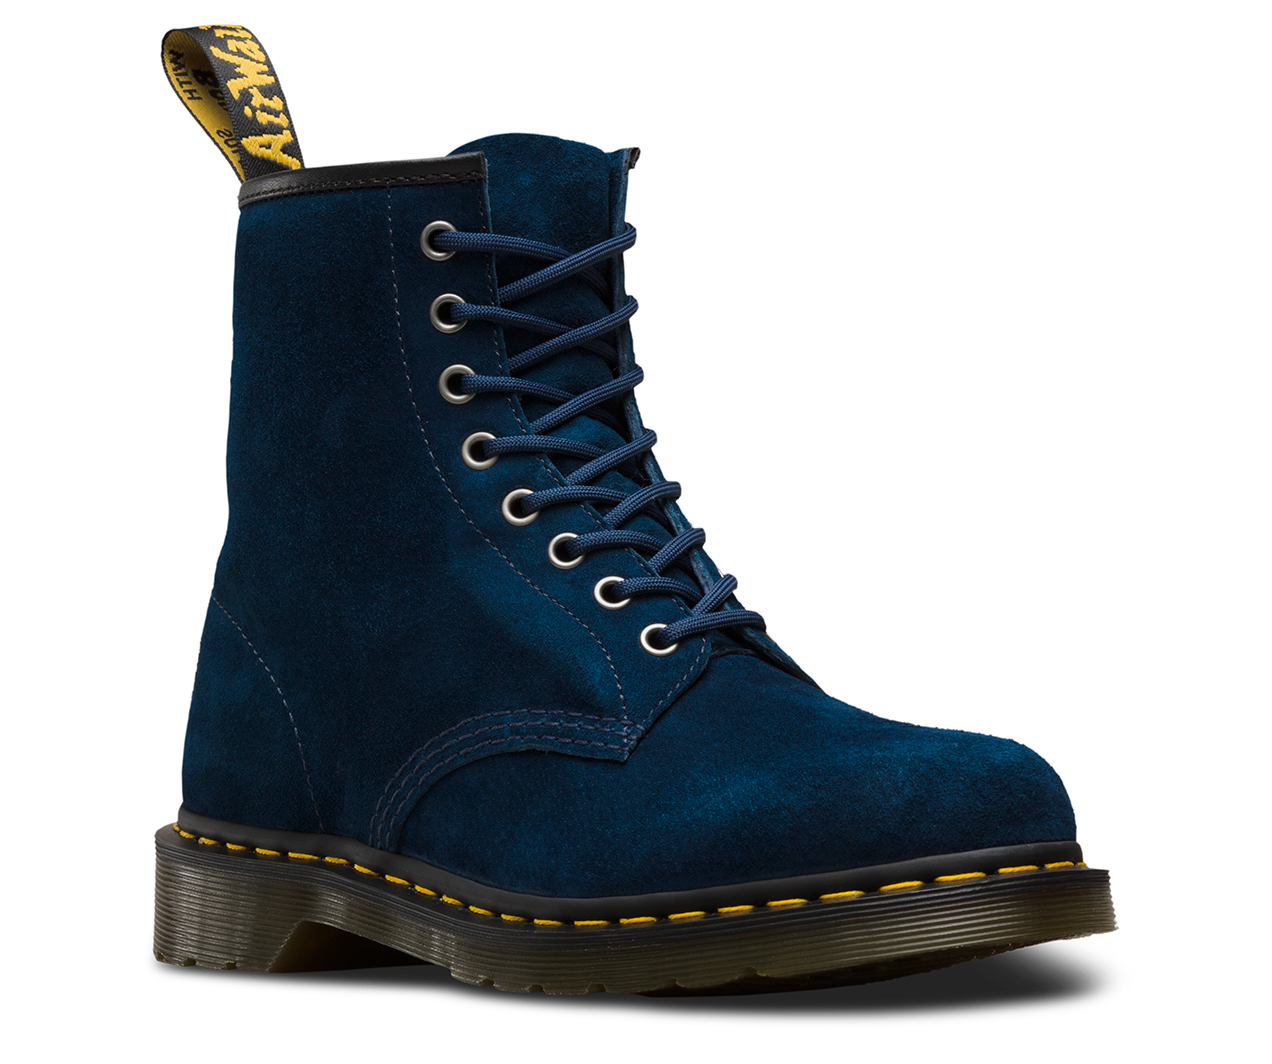 1460 soft buck boots pour homme site officiel dr martens france. Black Bedroom Furniture Sets. Home Design Ideas